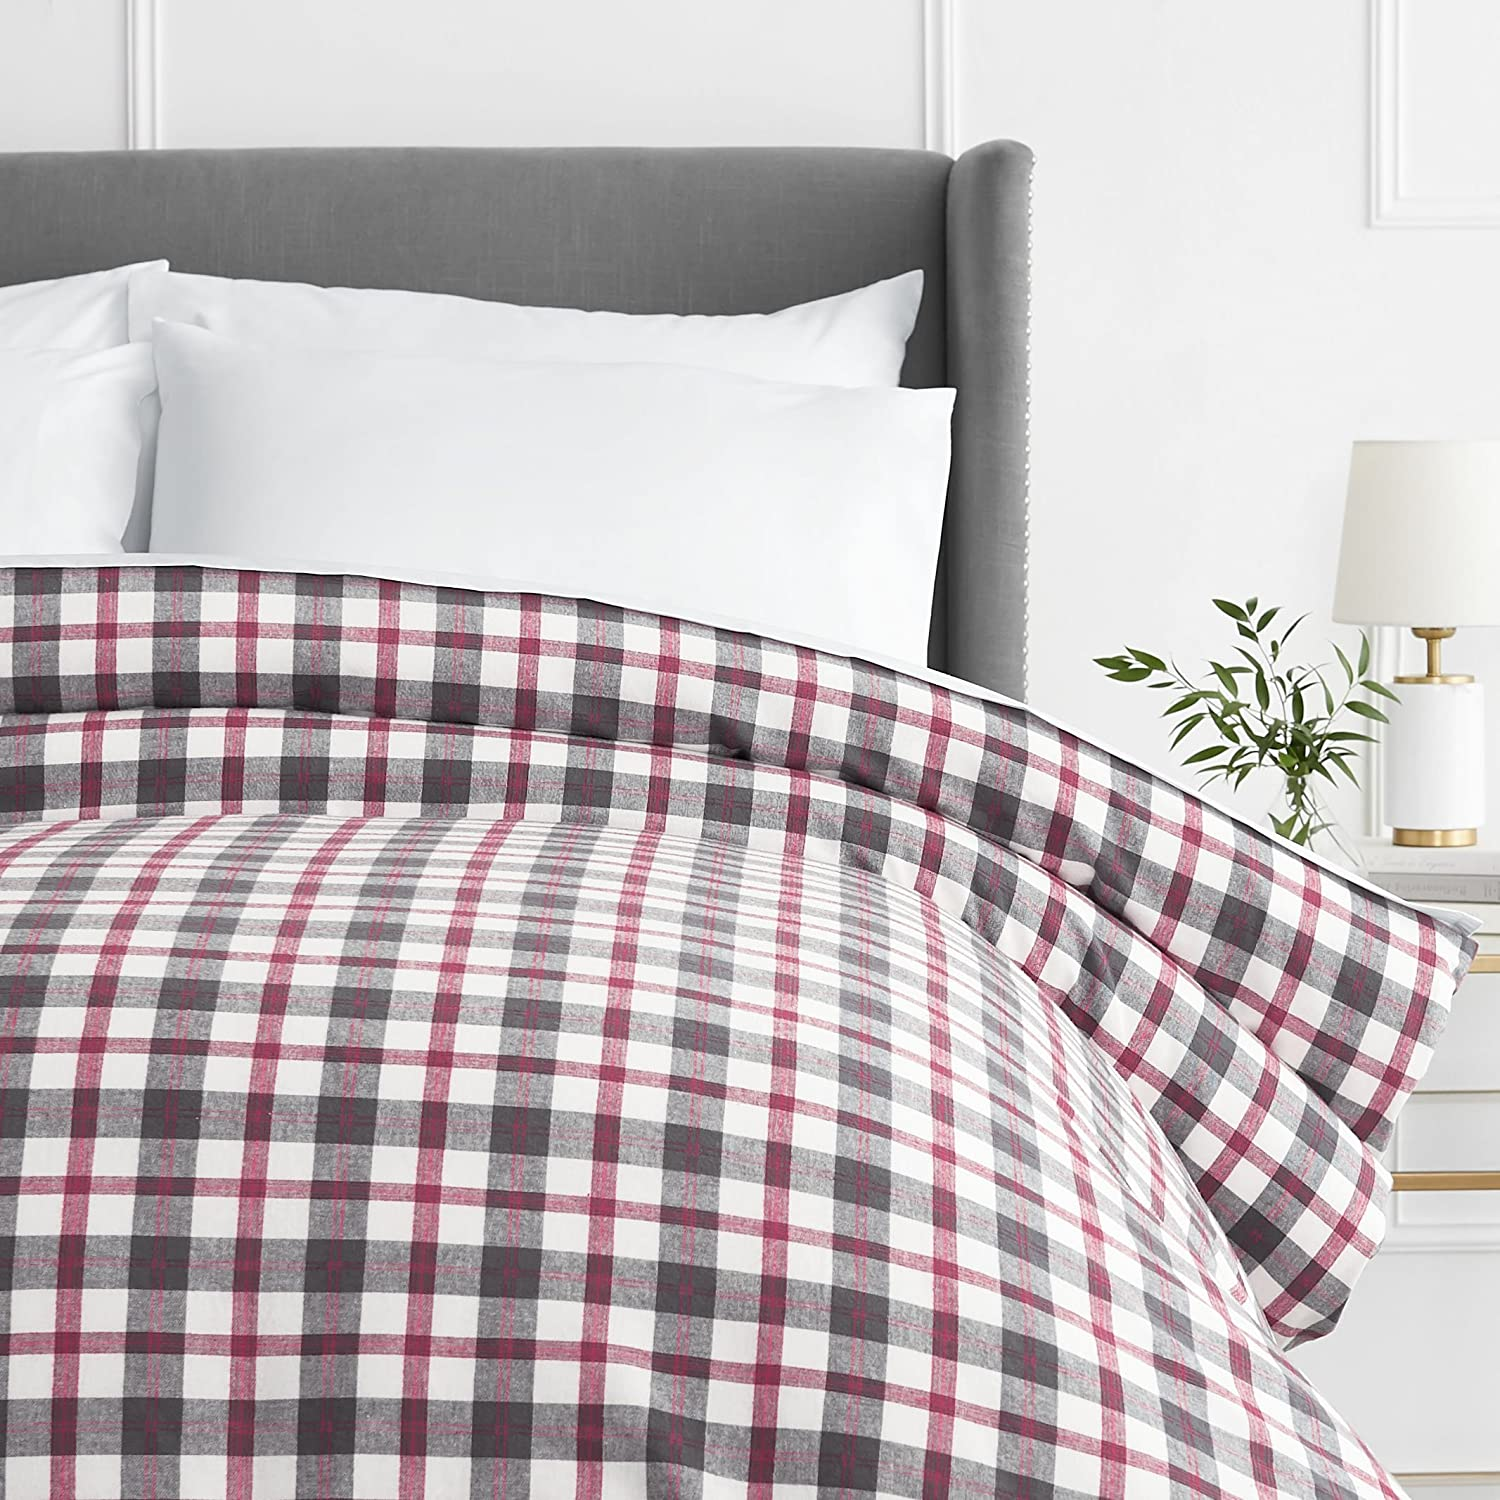 Pinzon 160 Gram Plaid Flannel Duvet Cover - Full/Queen, Blackwatch Plaid FLDC-BWPL-FQ